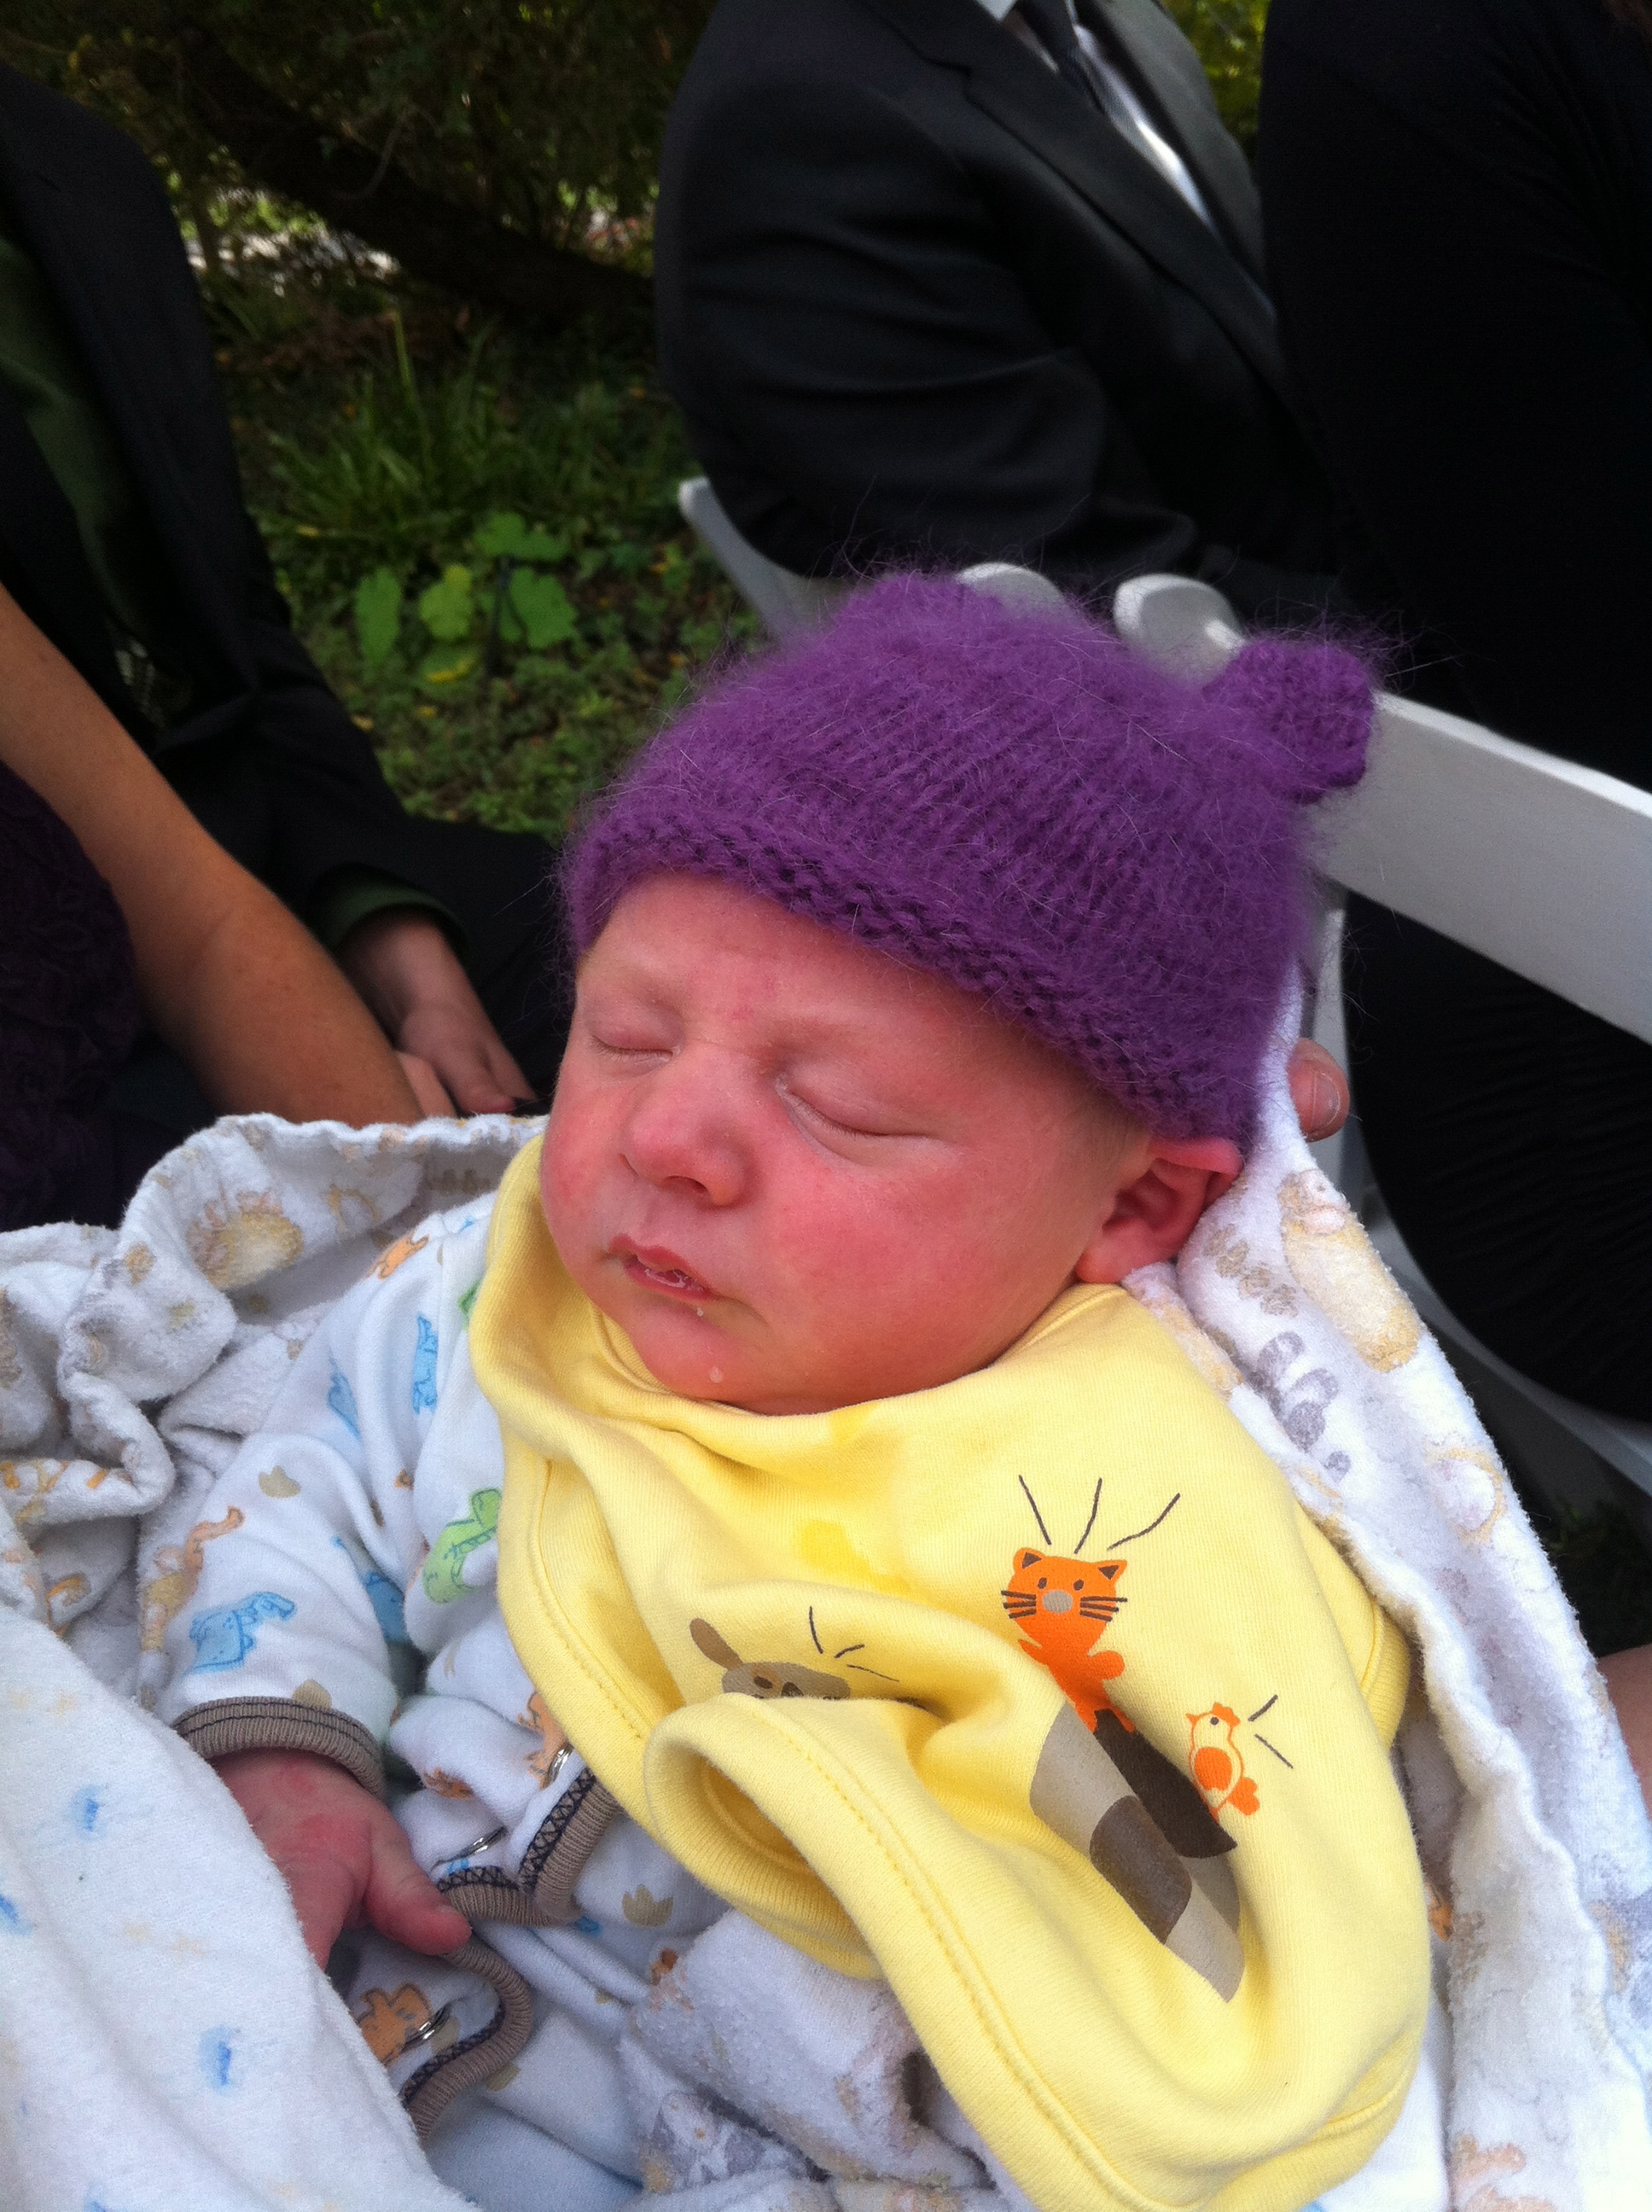 One of the only pictures of a baby in one of my knits. Little Trent didn't even keep this one as it was almost too small for his head.